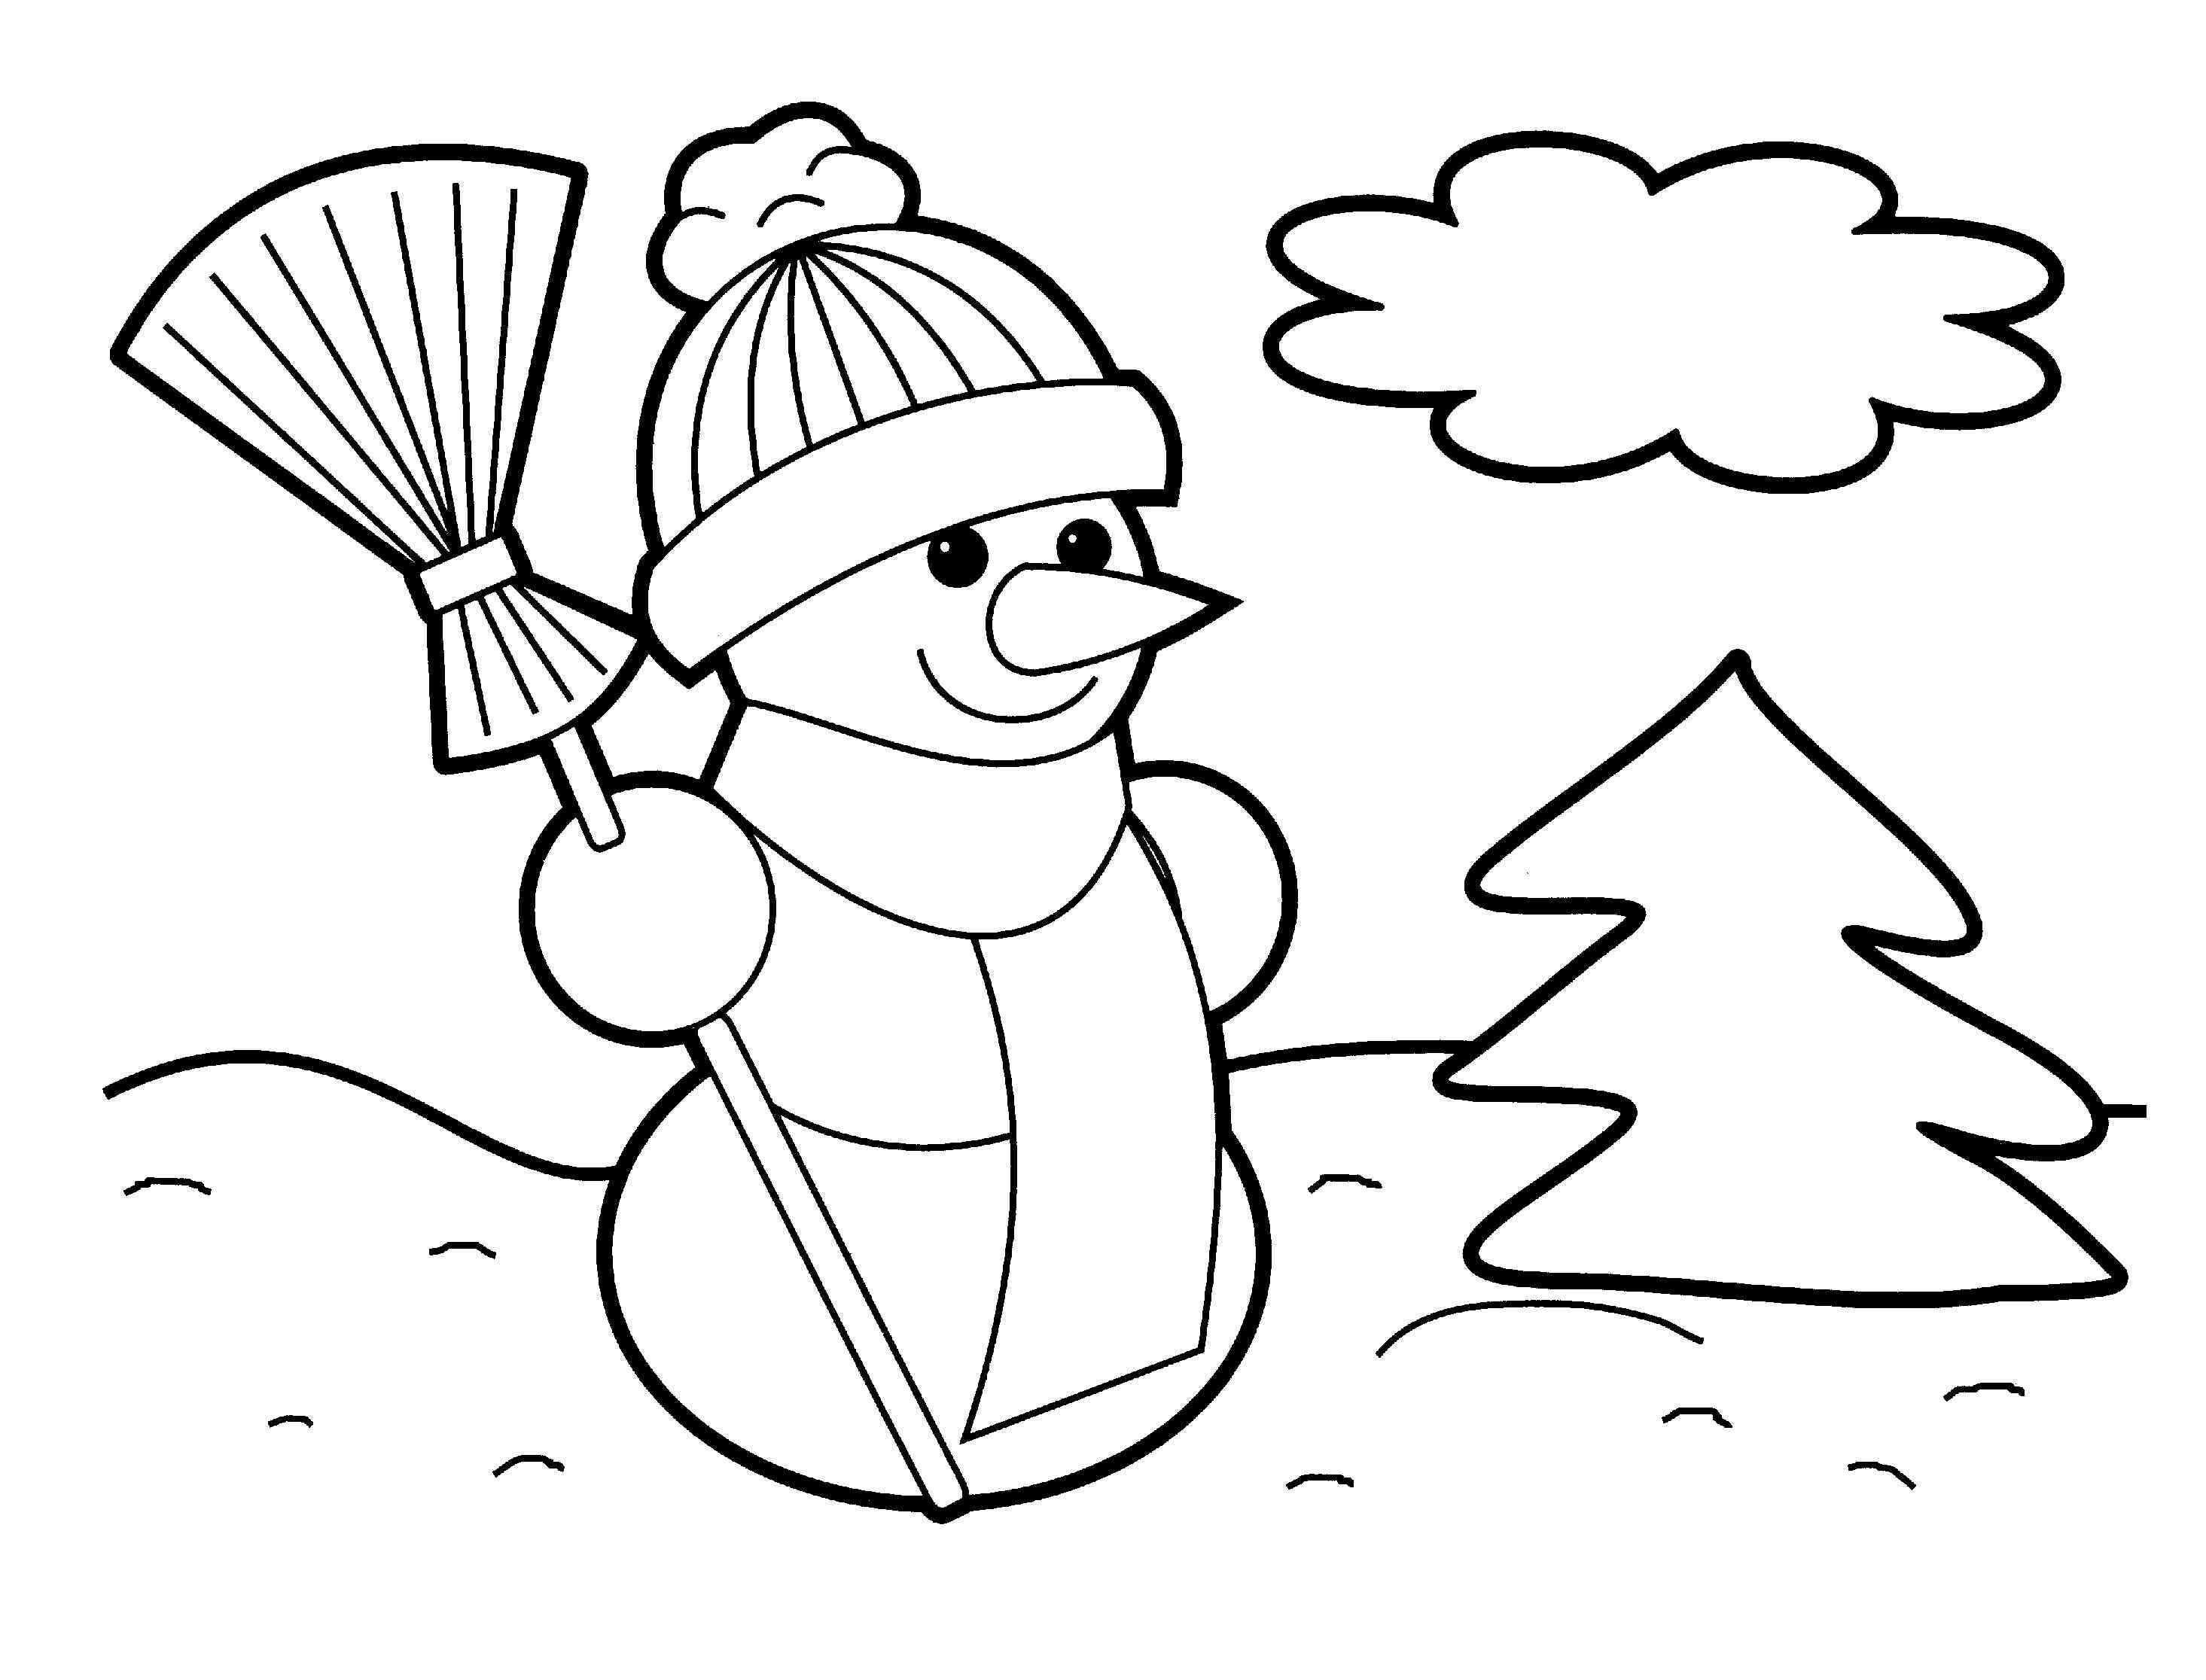 Santa And Rudolph Coloring Pages Santa Rudolph Coloring Pages Elegant Rudolph The Red Nosed Reindeer